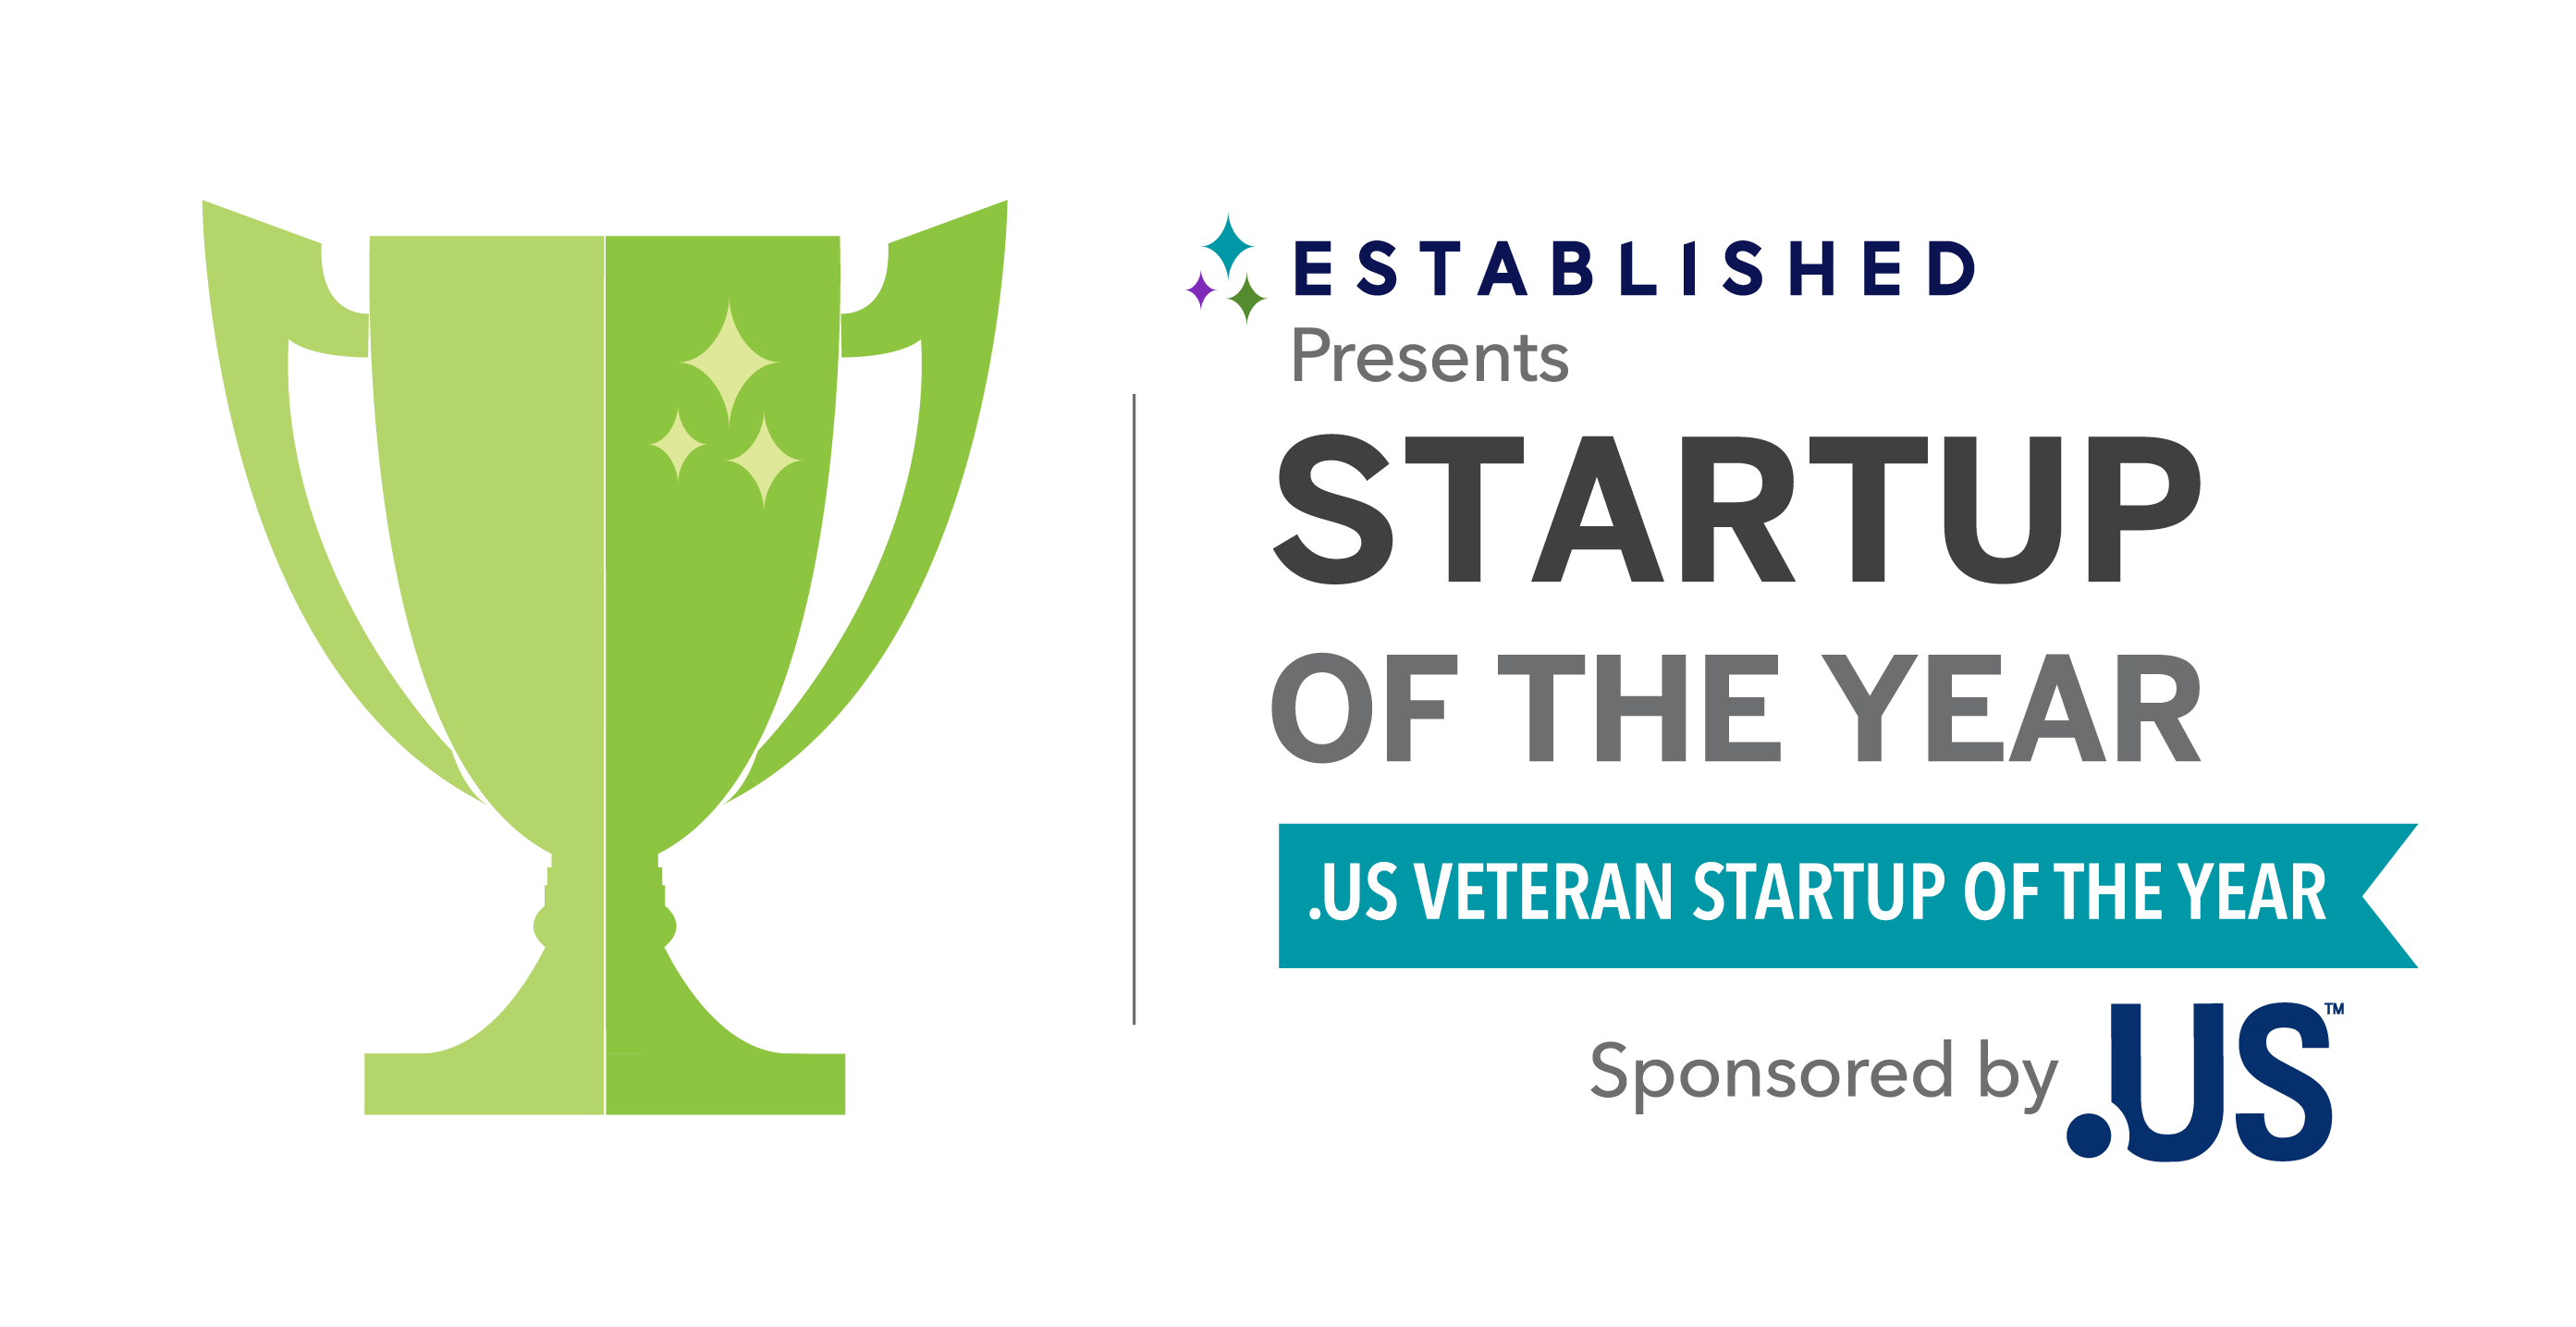 .US Veteran Startup of the Year